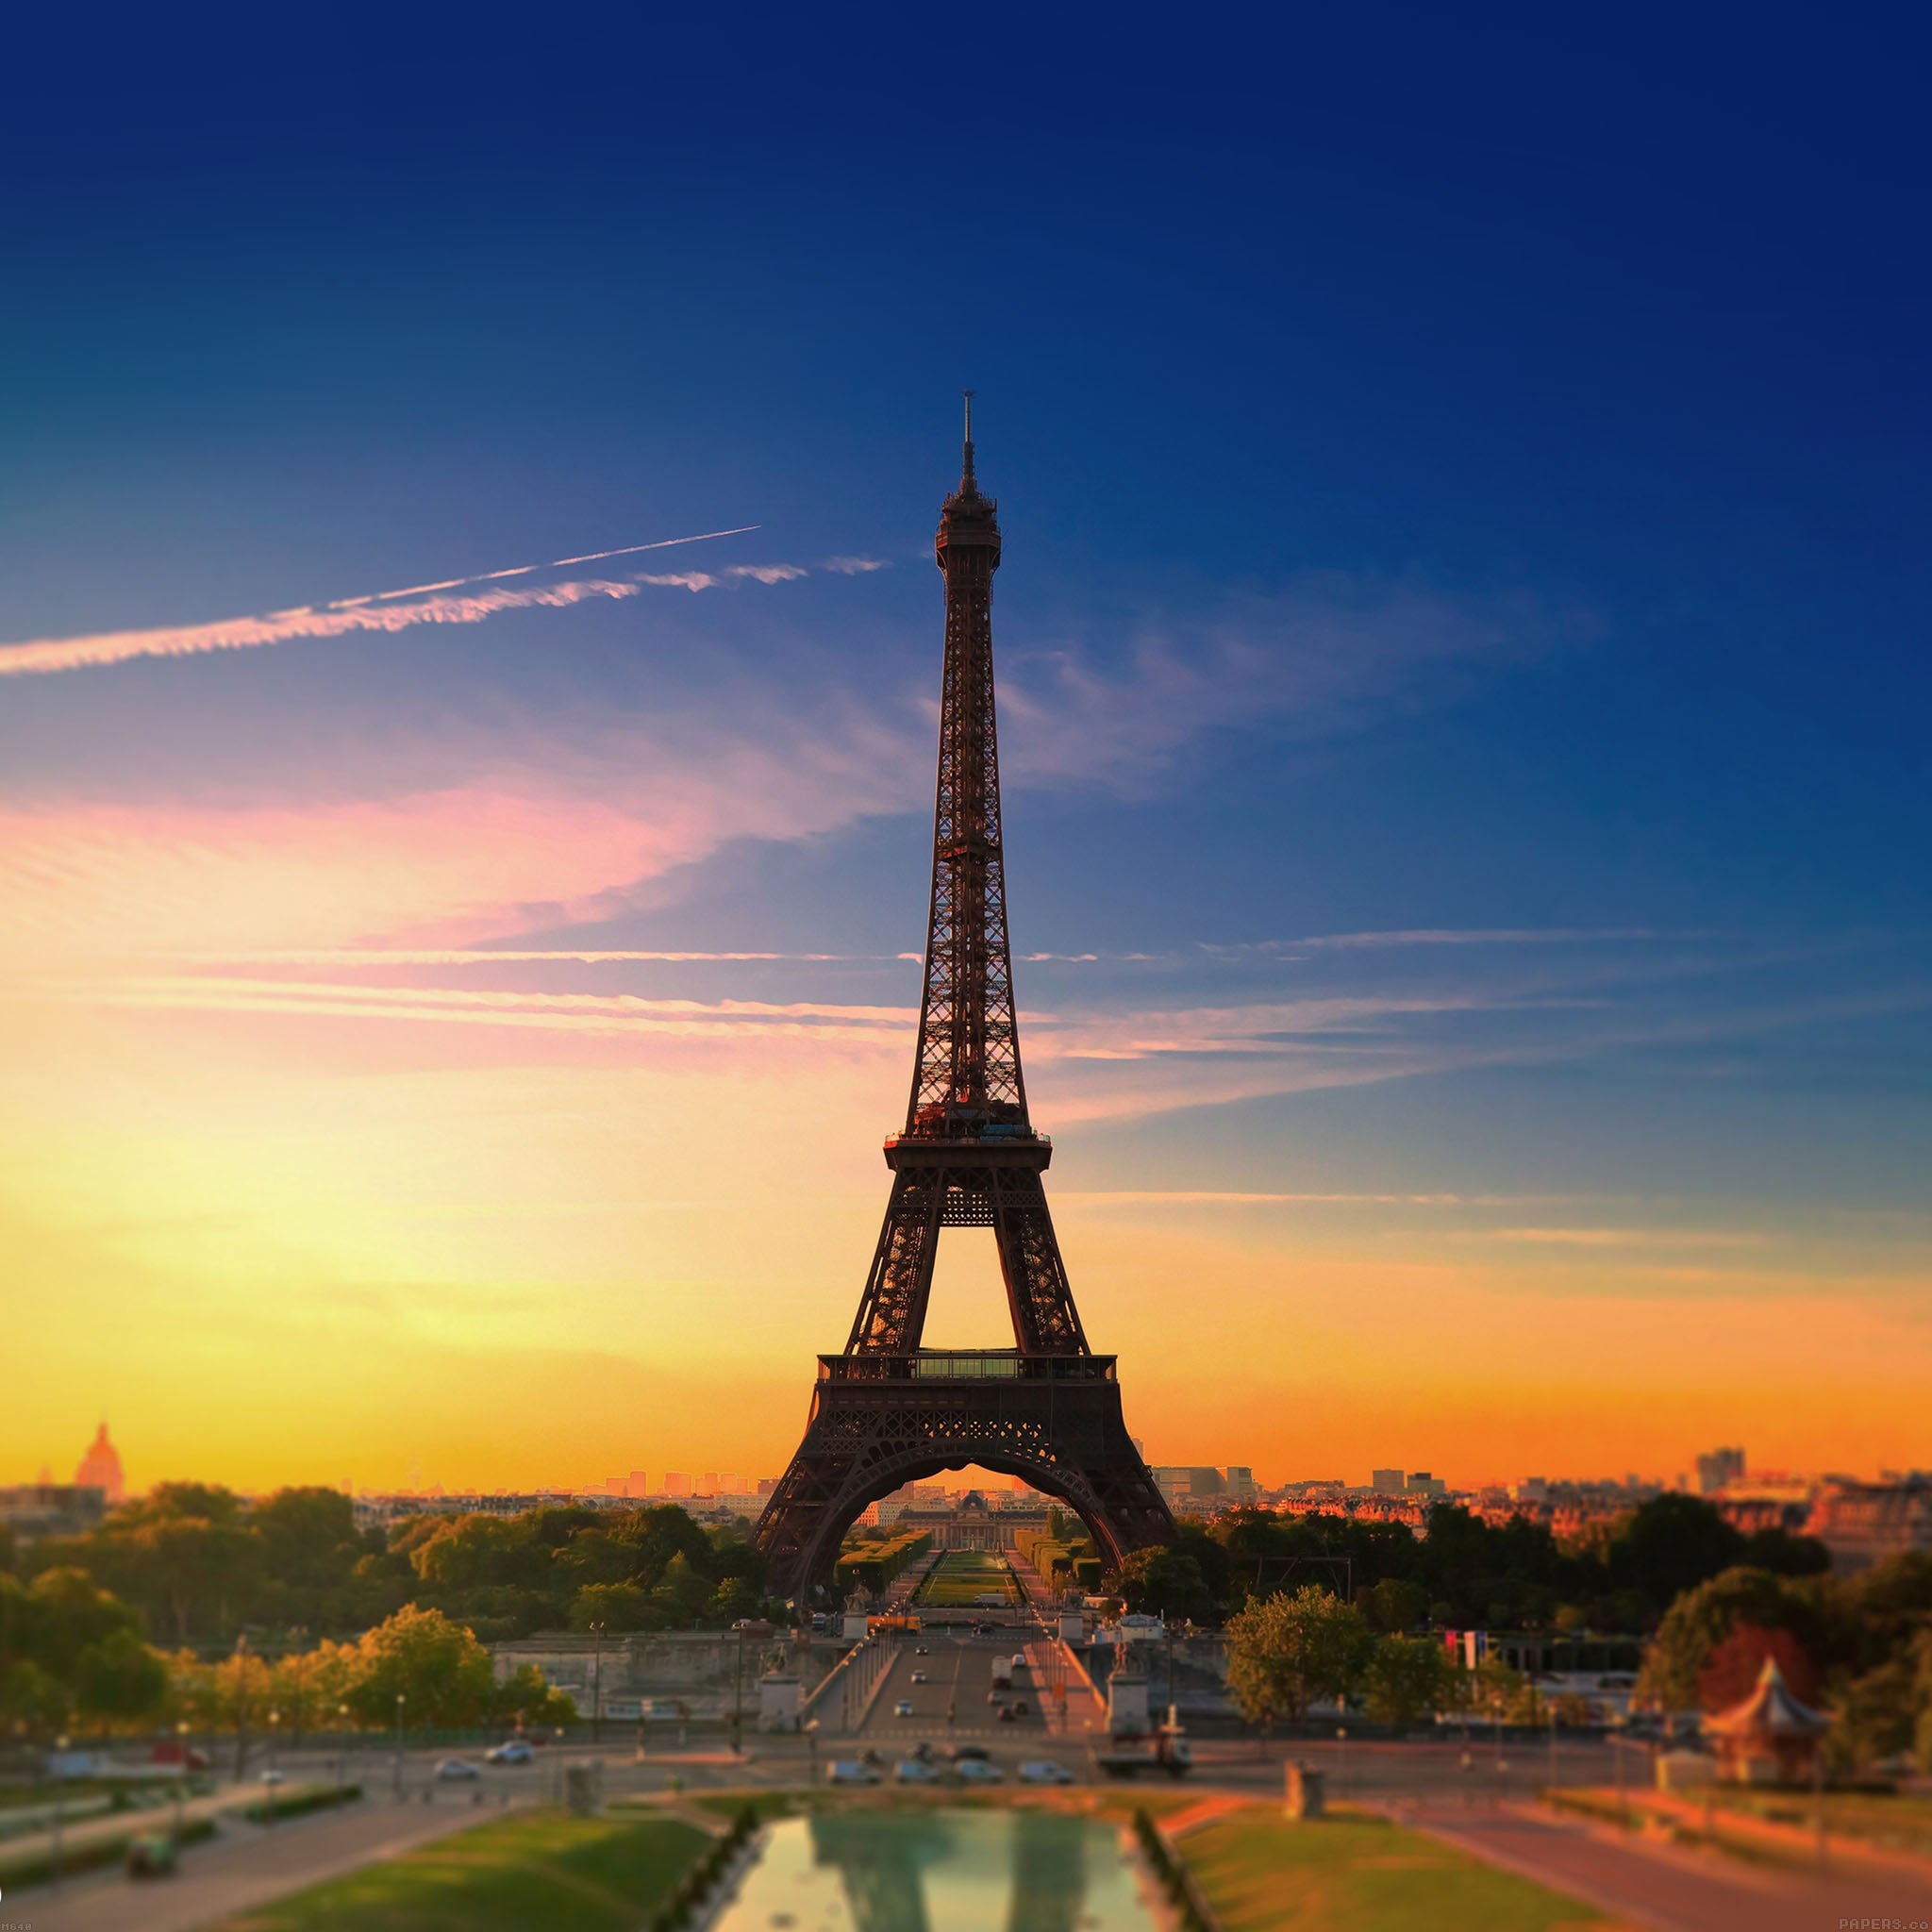 freeios7 mg40 city of love paris eiffel tower france parallax hd iphone ipad wallpaper. Black Bedroom Furniture Sets. Home Design Ideas